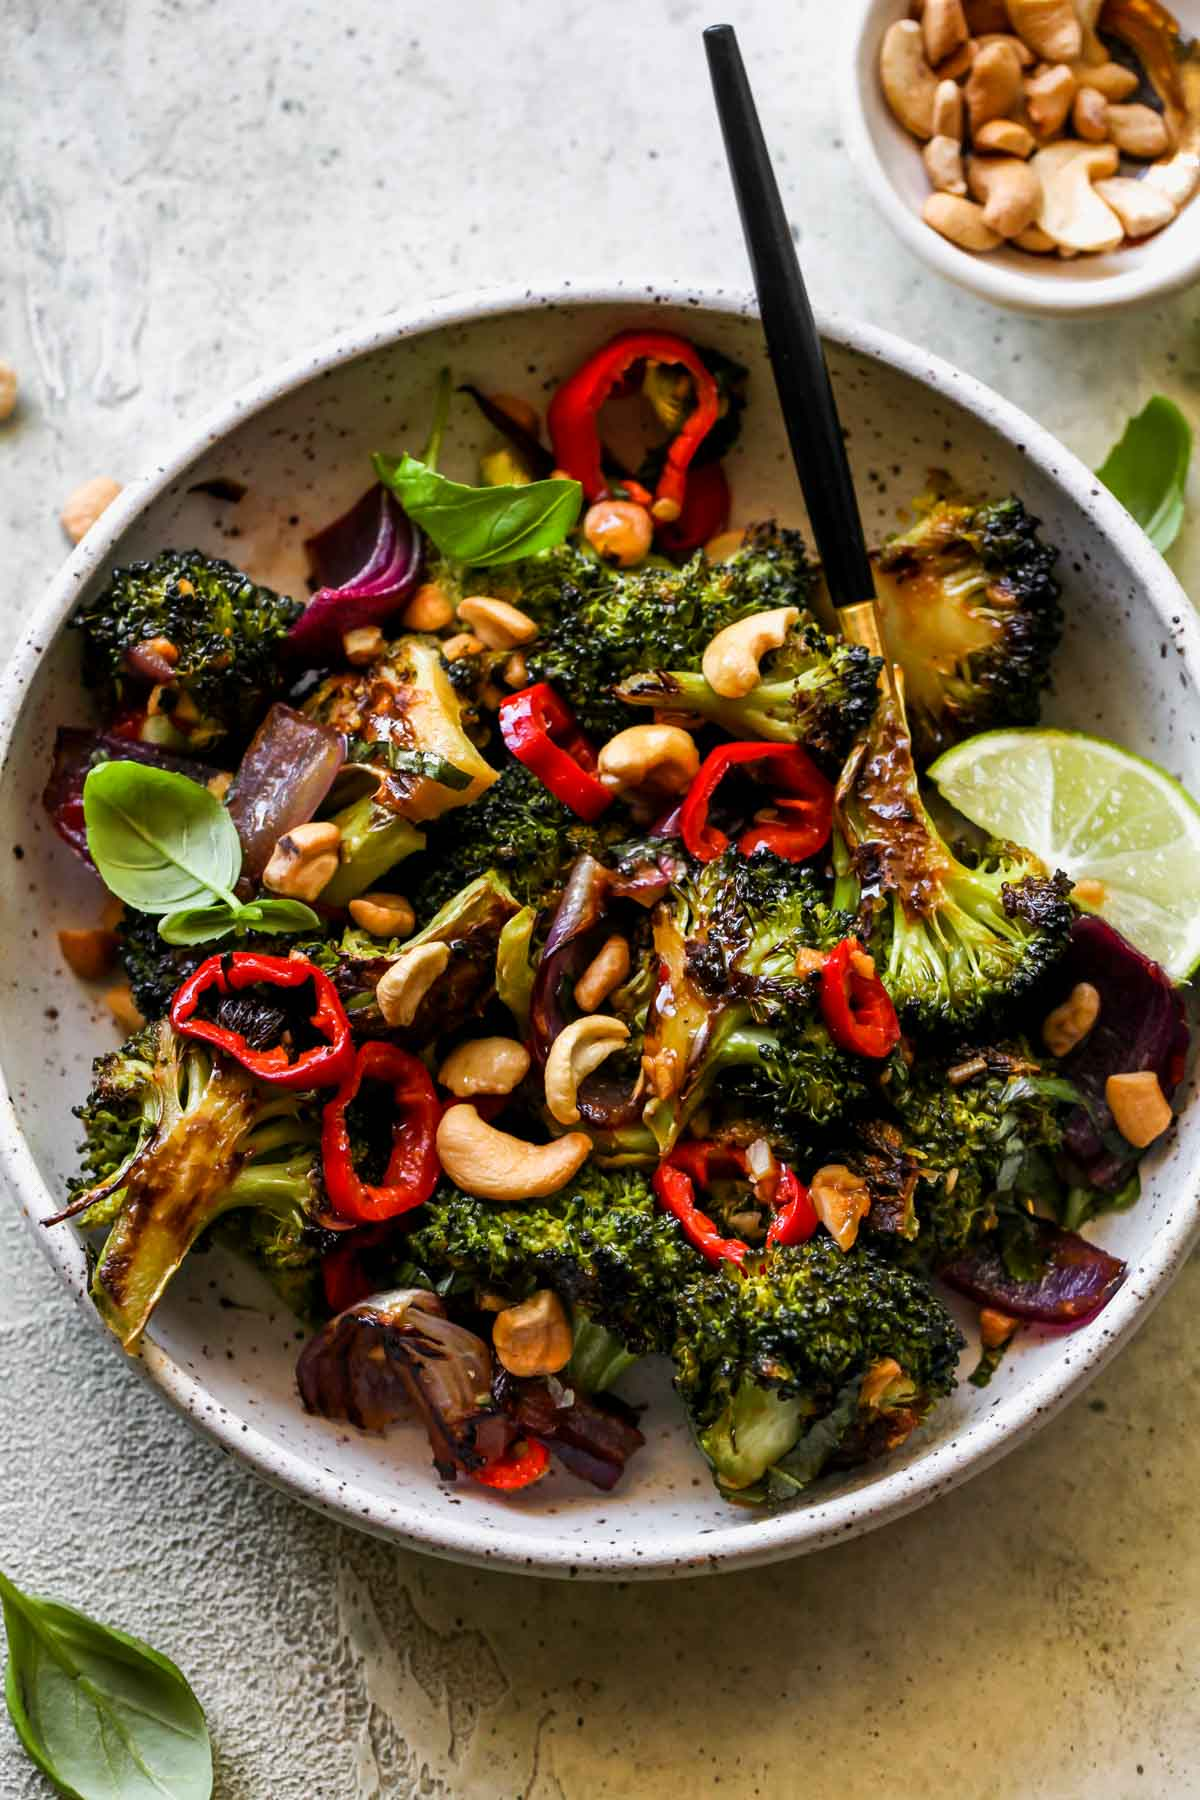 Chili-garlic roasted broccoli topped with cashews and lime in a serving dish